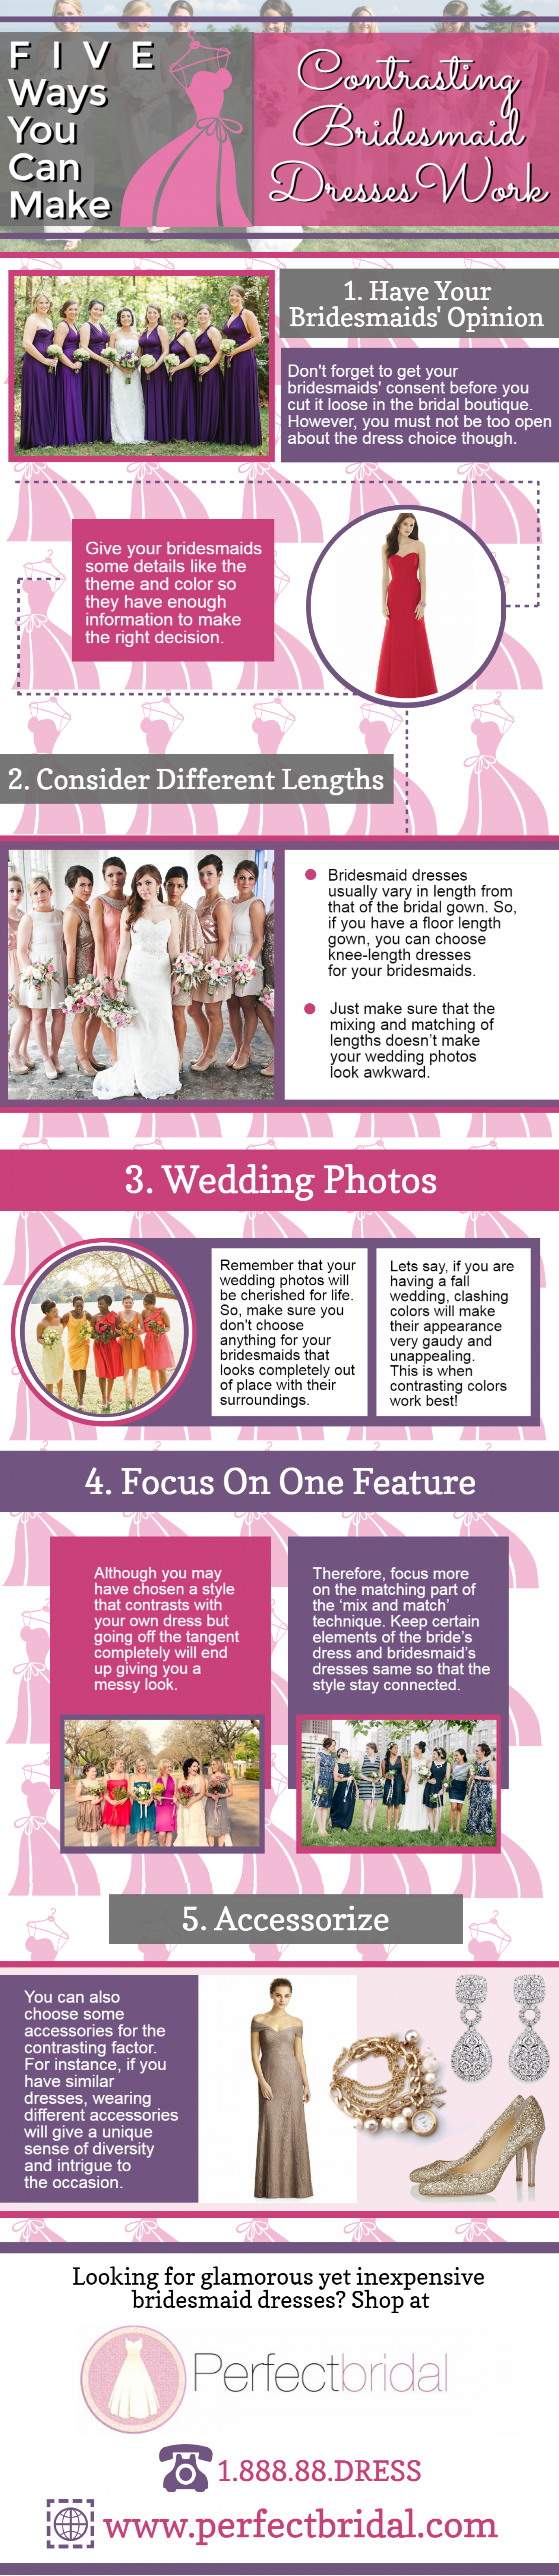 Five Ways You Can Make Contrasting Bridesmaid Dresses Work Infographic